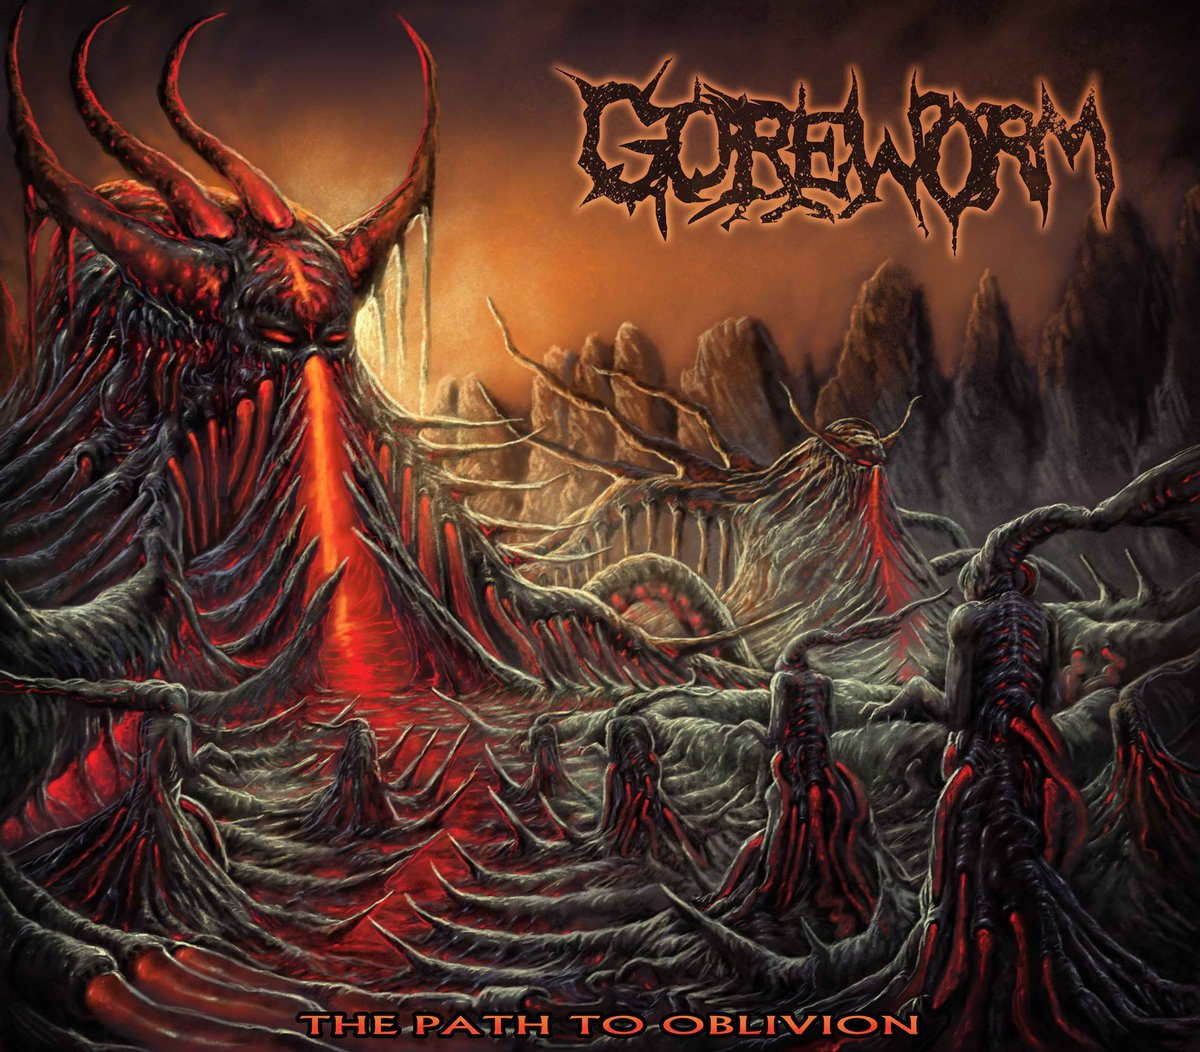 Goreworm - The Path to Oblivion [EP] (2018)